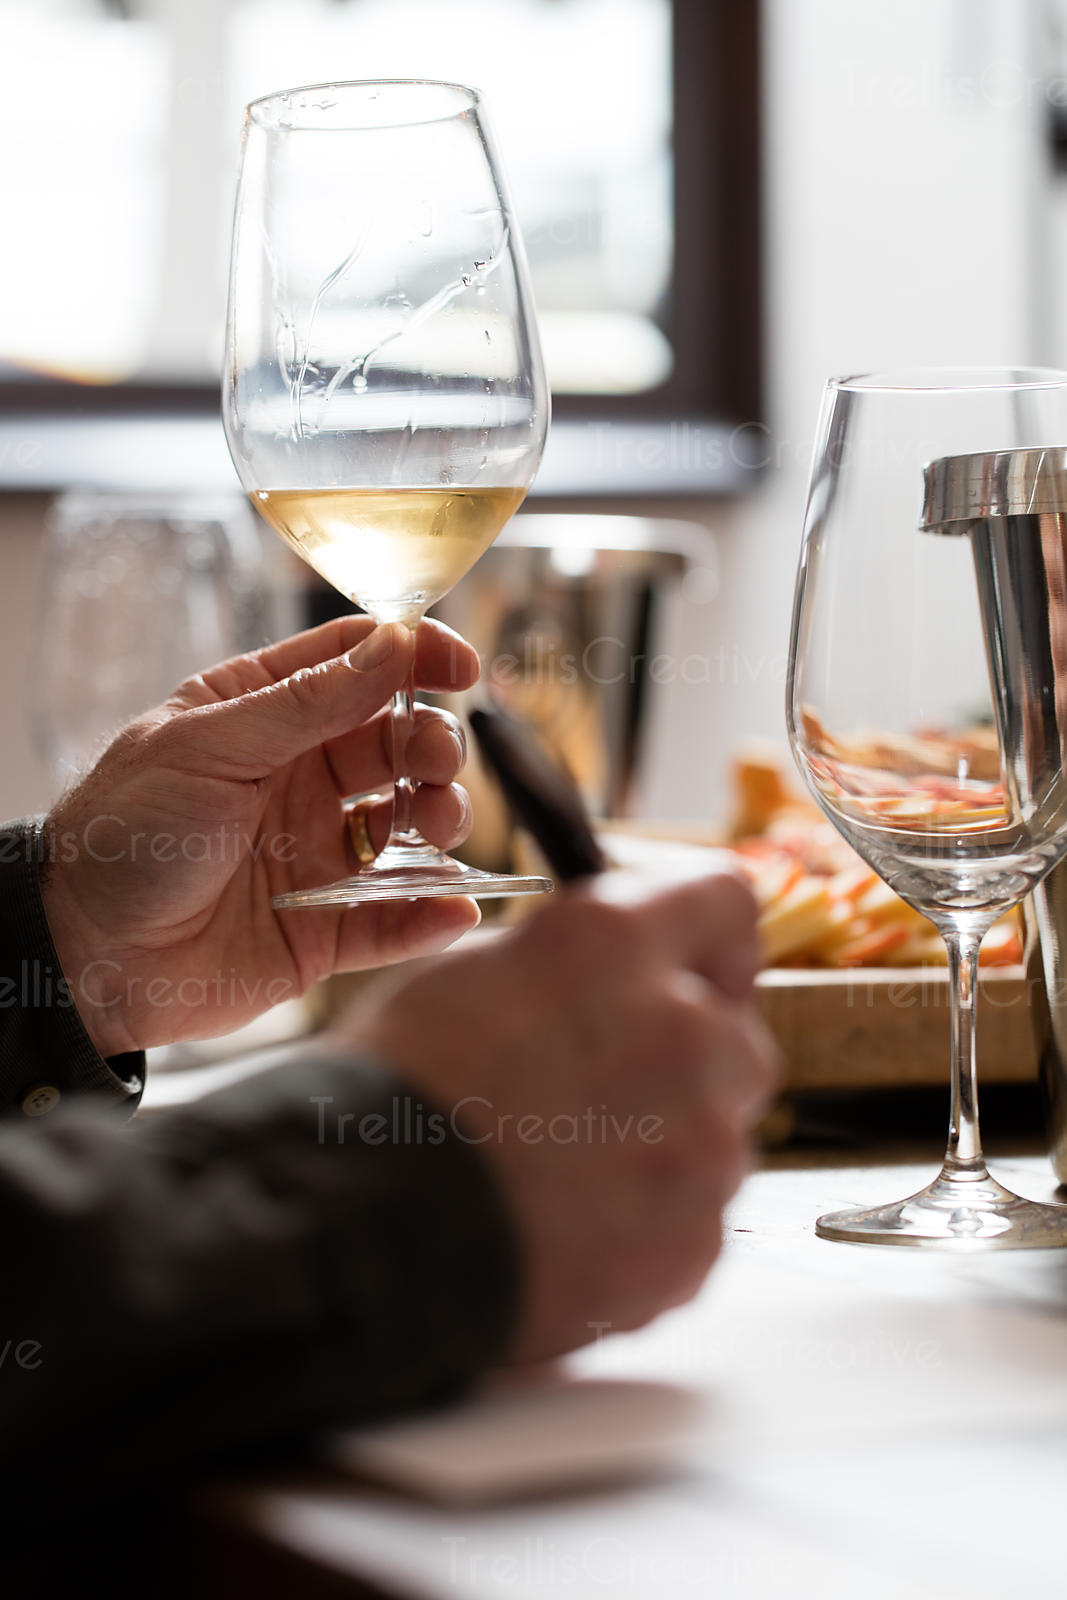 Close-up of a person holding wine glass at a tasting event taking notes